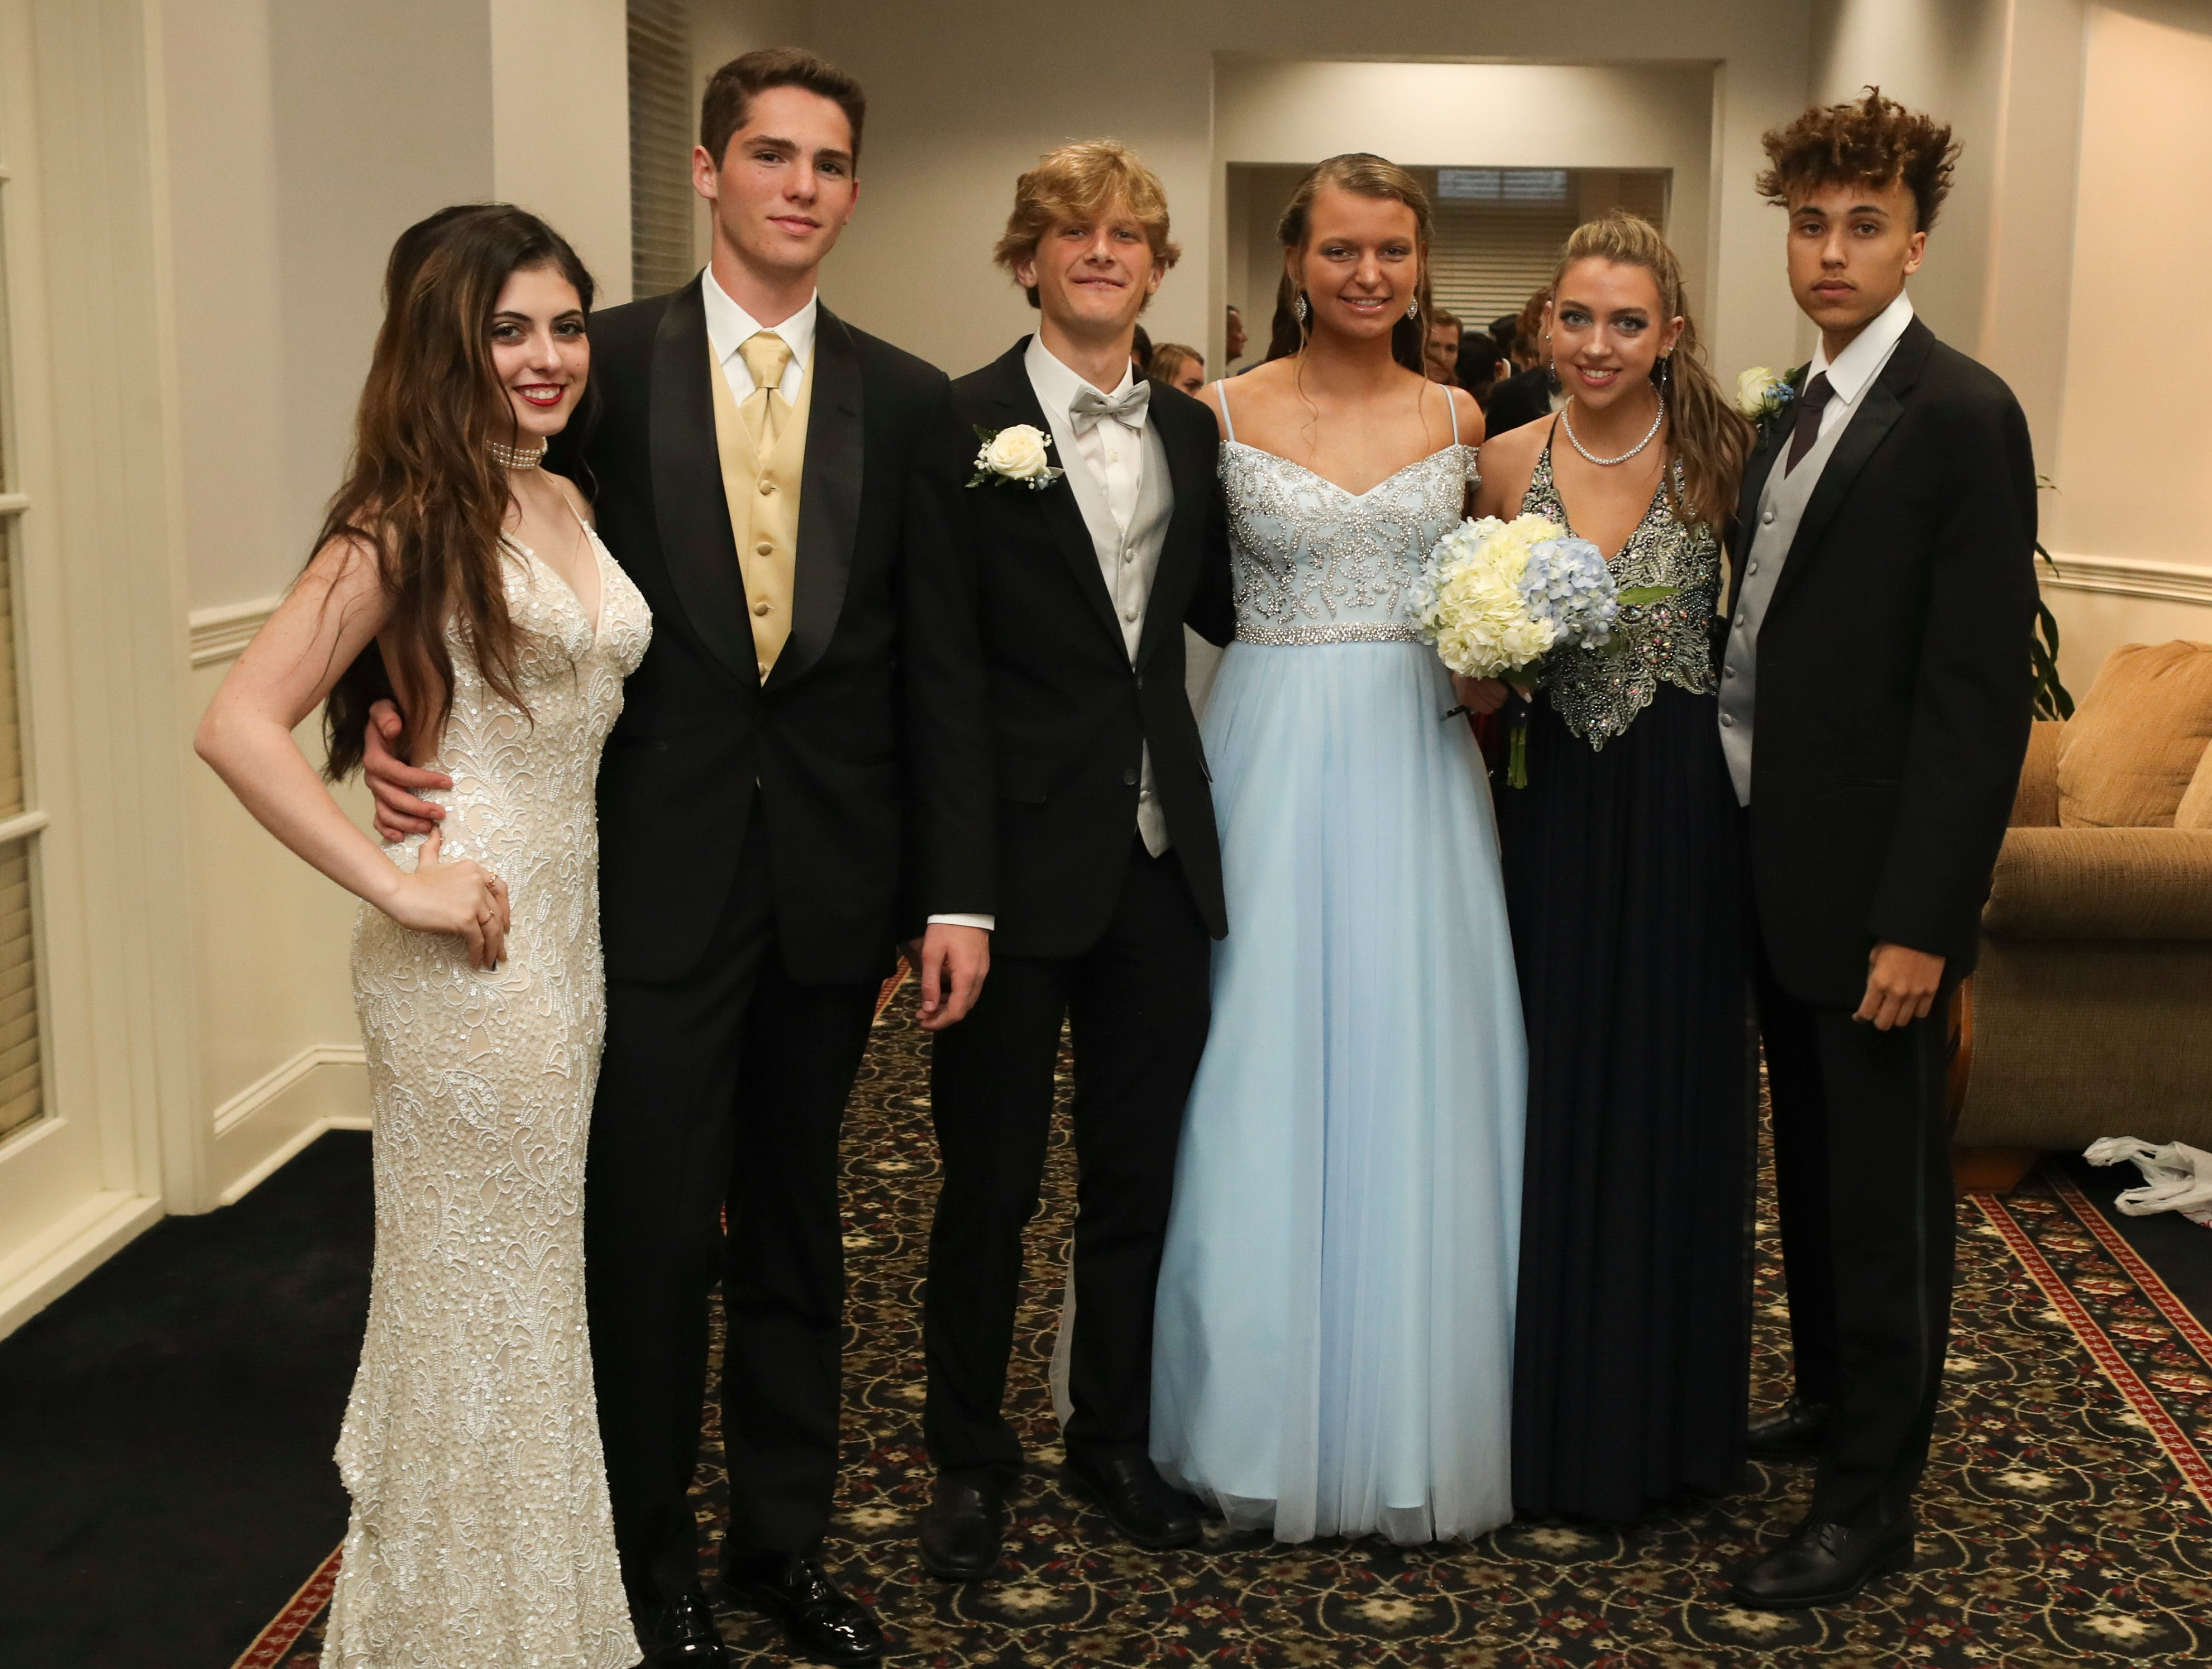 Students and guests arrive at Deerfield Golf Club for the Newark Charter School prom Friday, April 12, 2019.